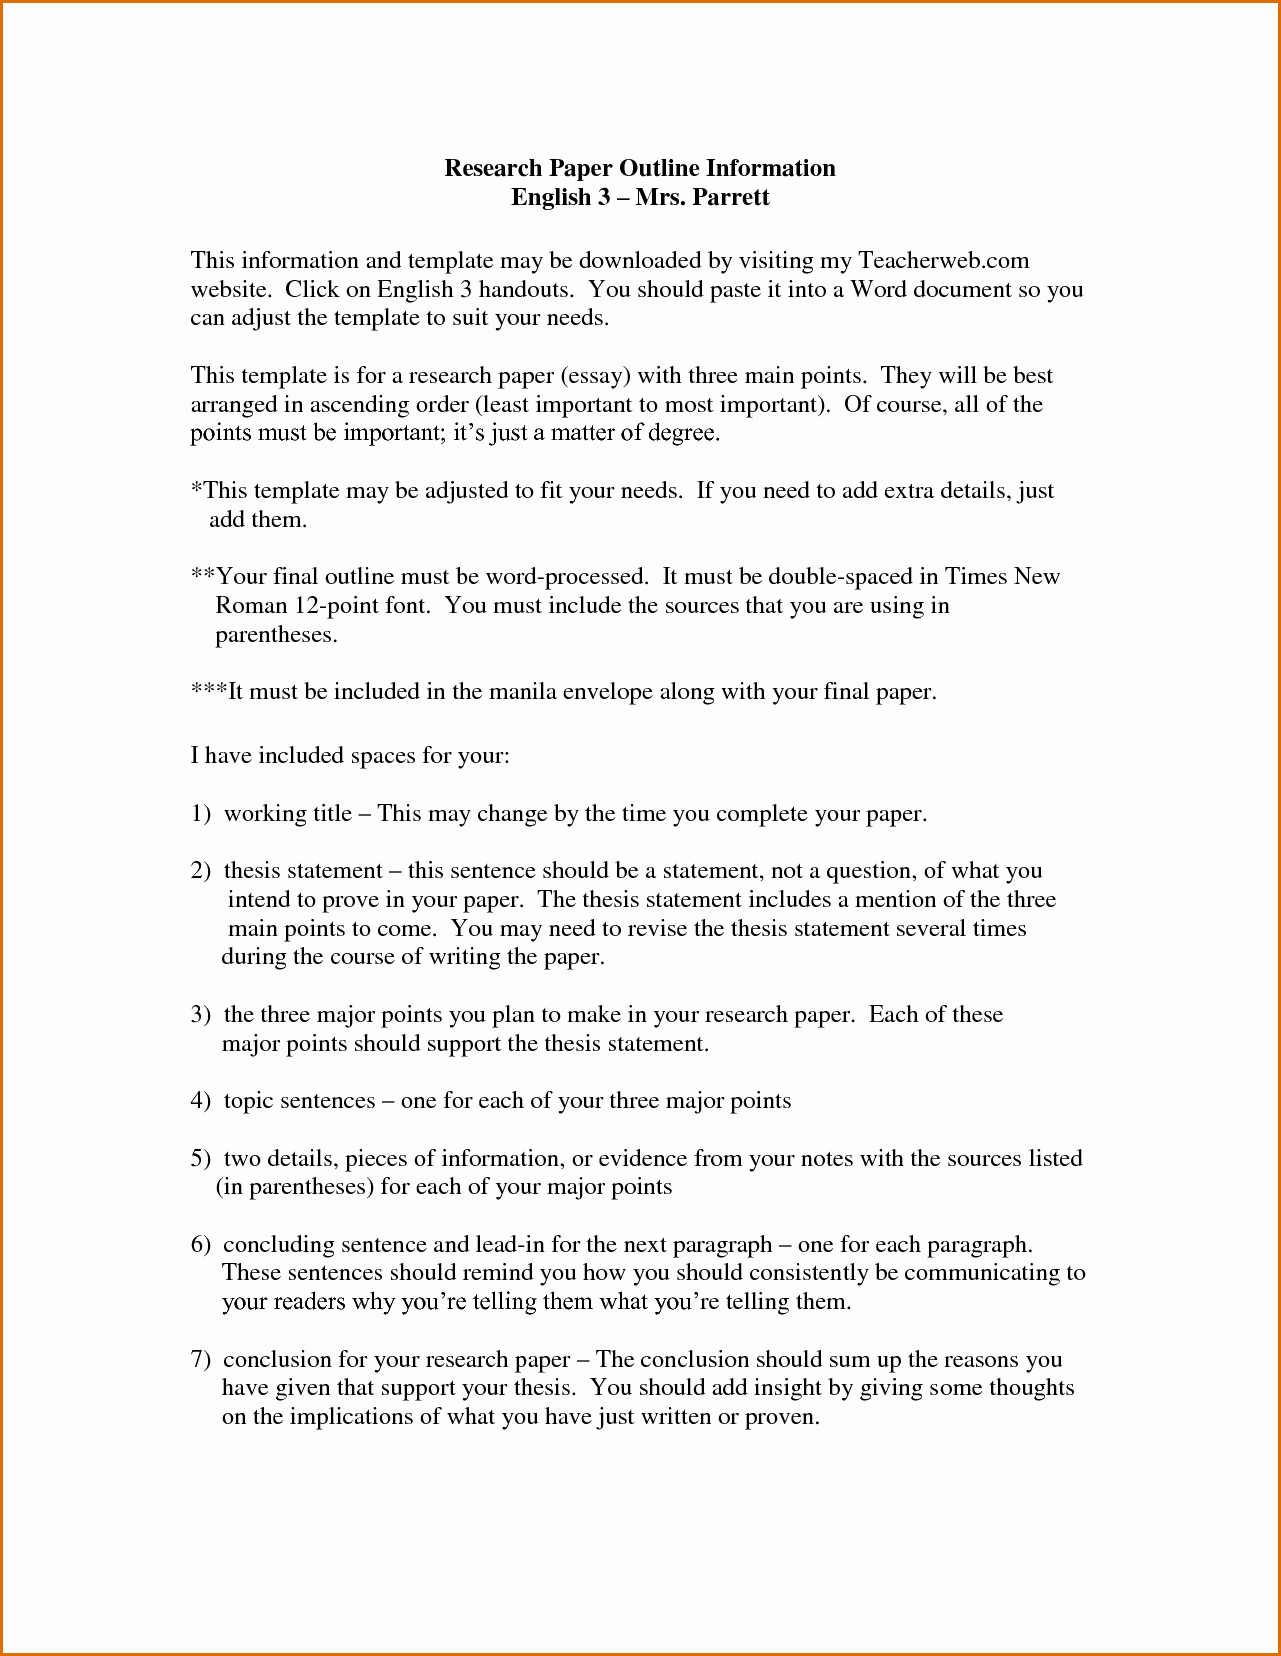 Research Paper Outline Template Word Lovely 9 Research Paper Outline Template